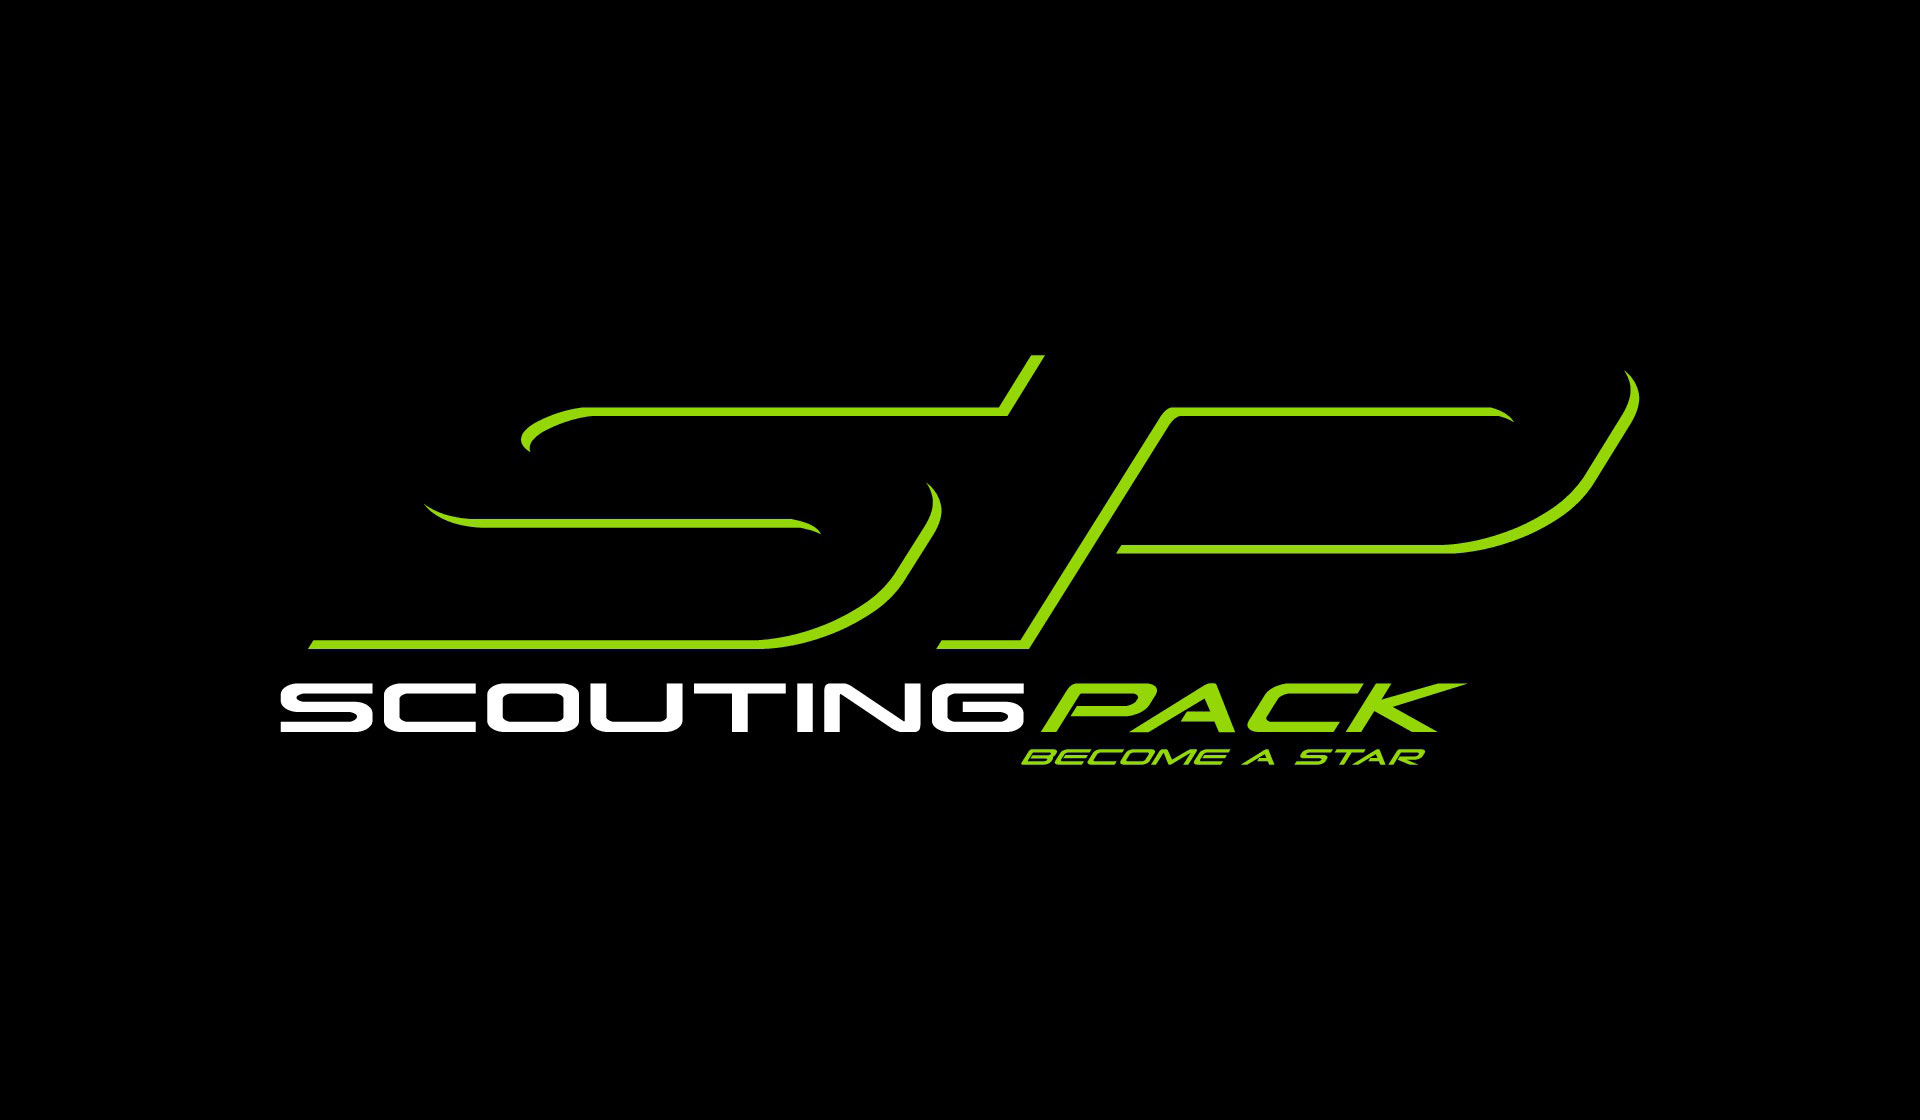 Scouting Pack